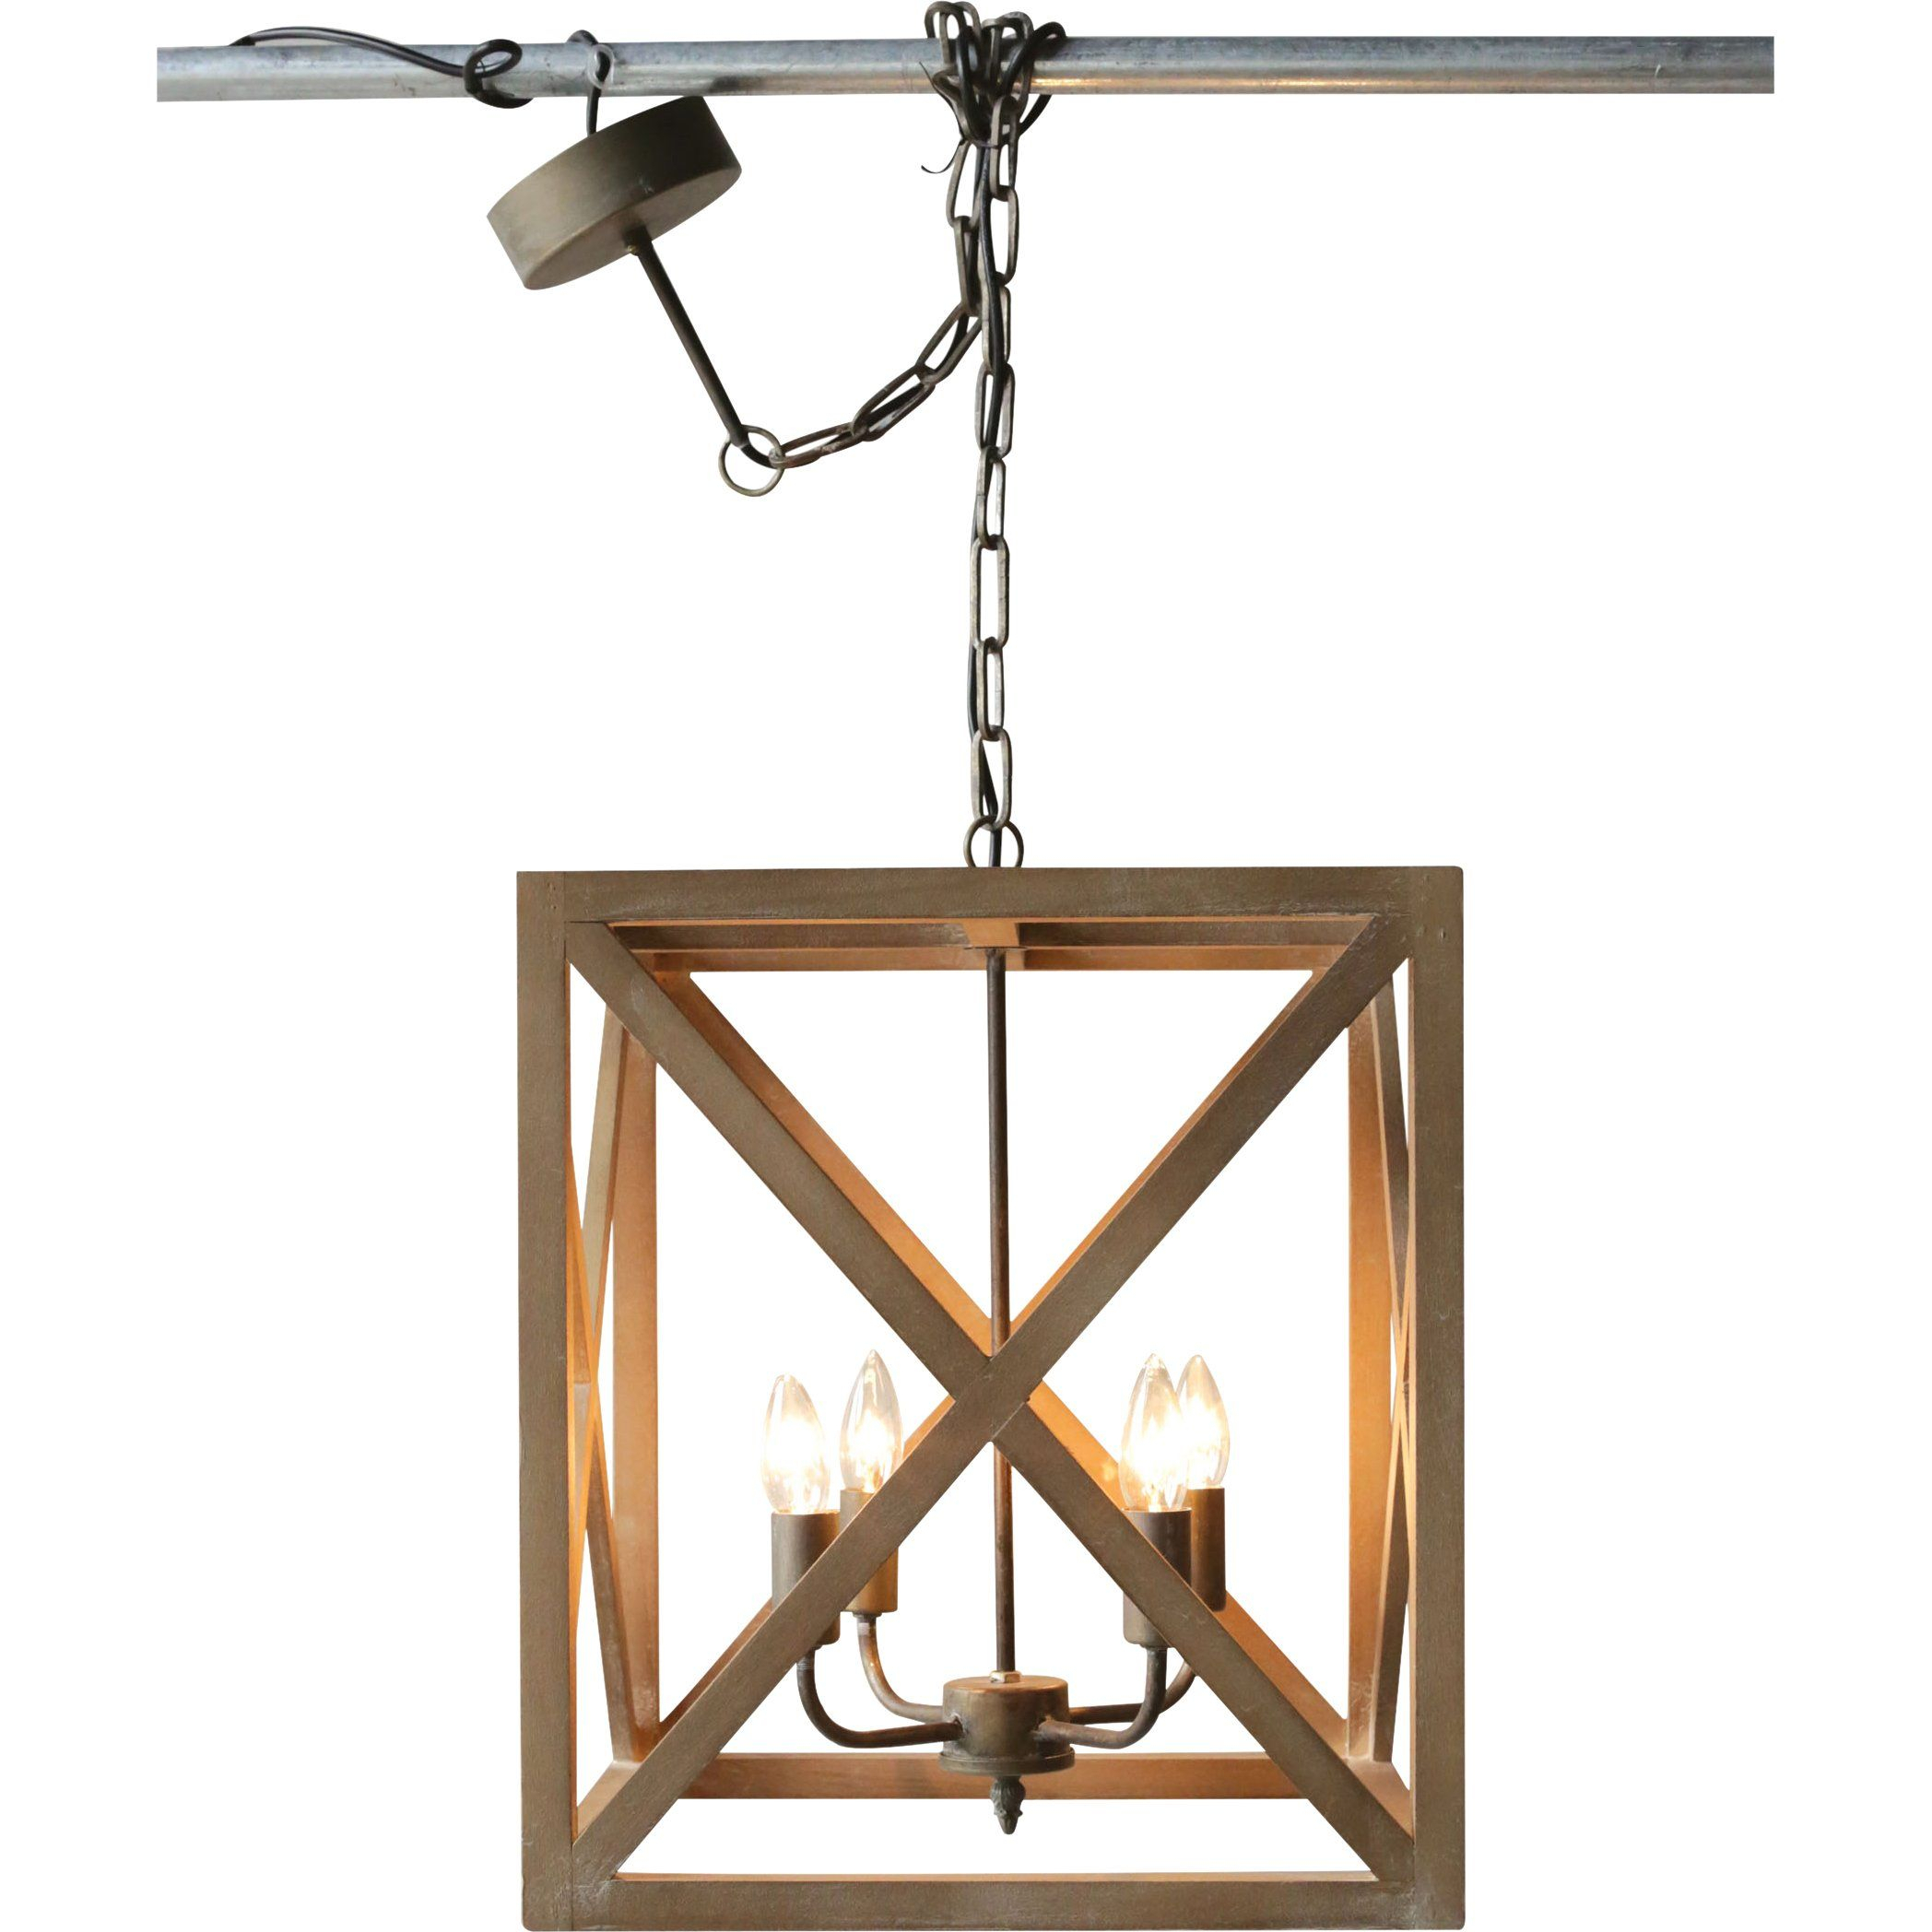 William 4 Light Square/rectangle Pendant | Kitchen | Pendant With Regard To William 4 Light Lantern Square / Rectangle Pendants (View 5 of 30)